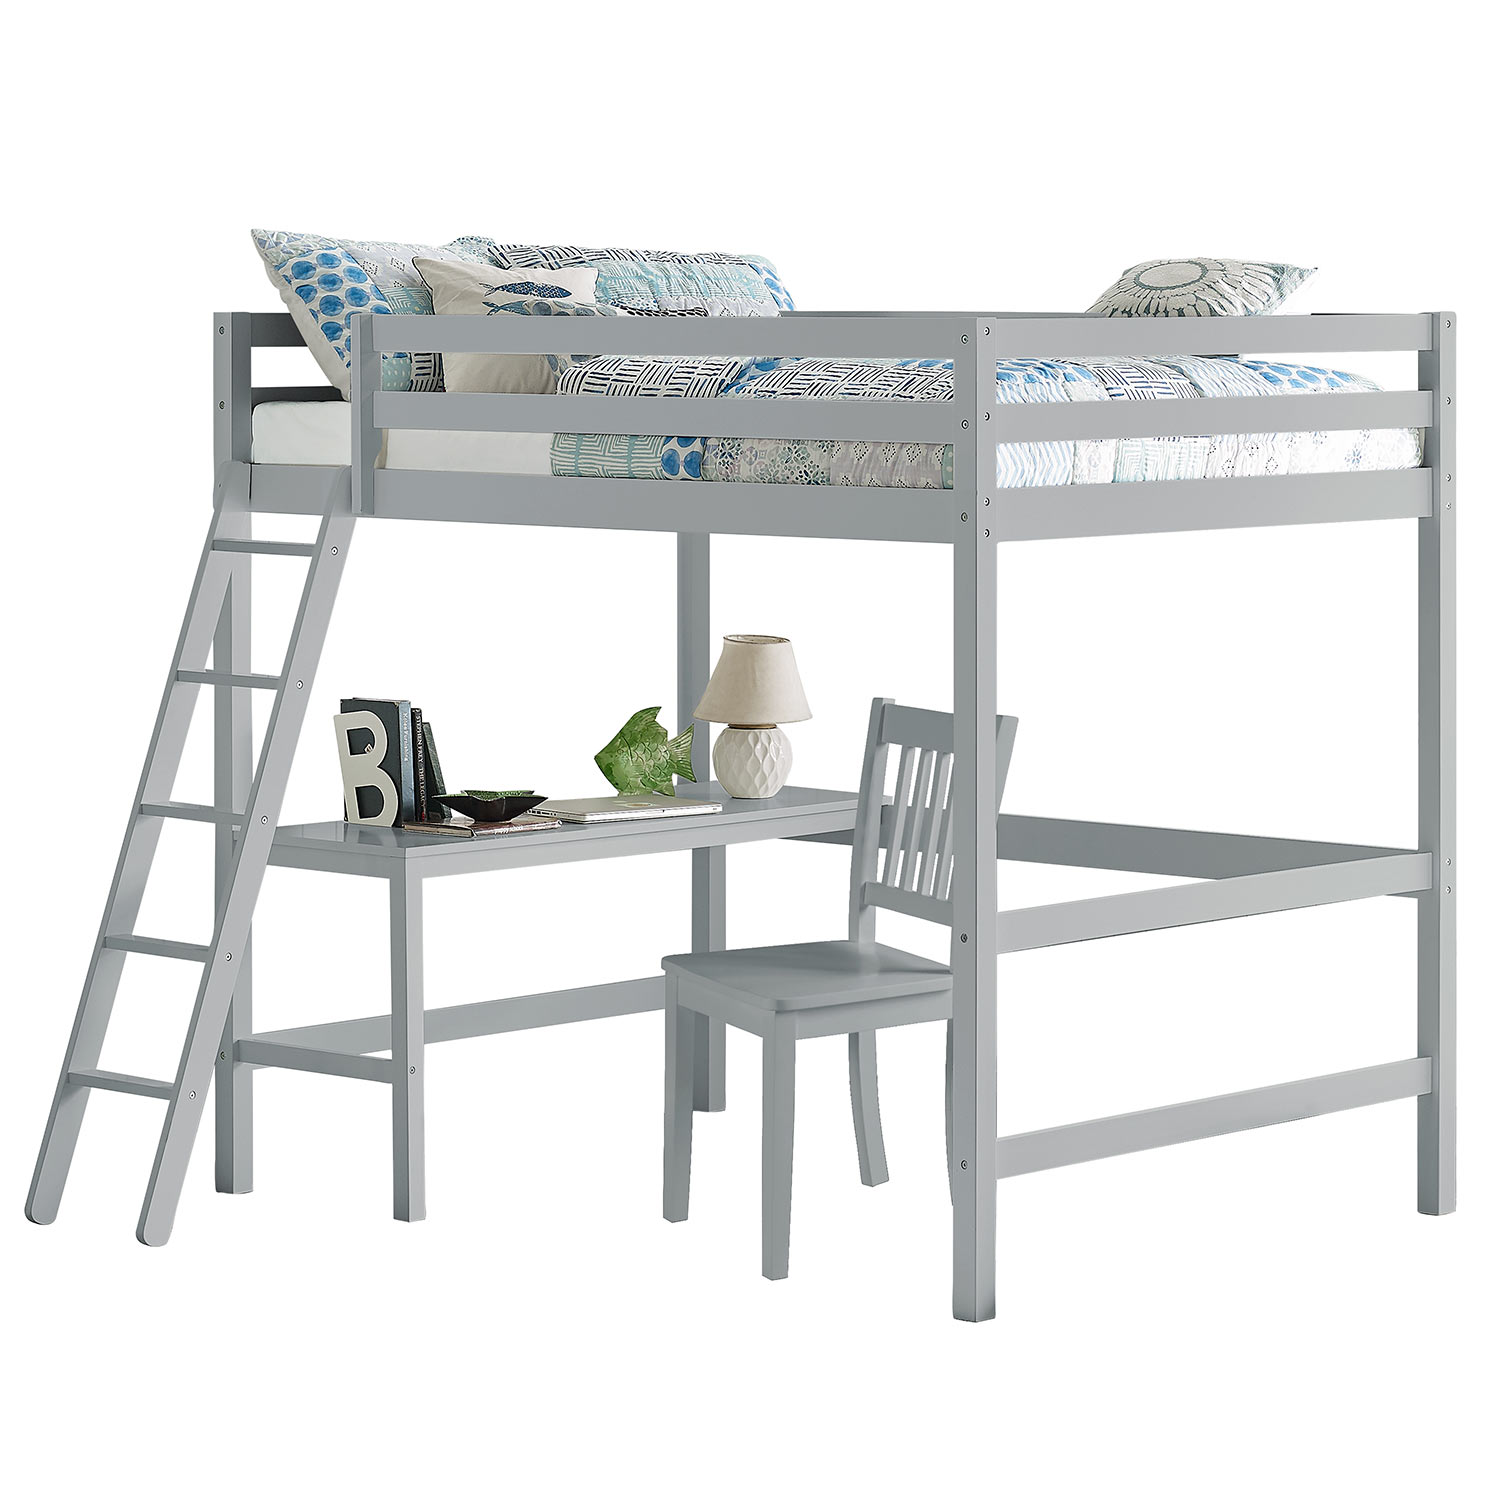 Hillsdale Caspian Full Loft Bed with Chair - Gray